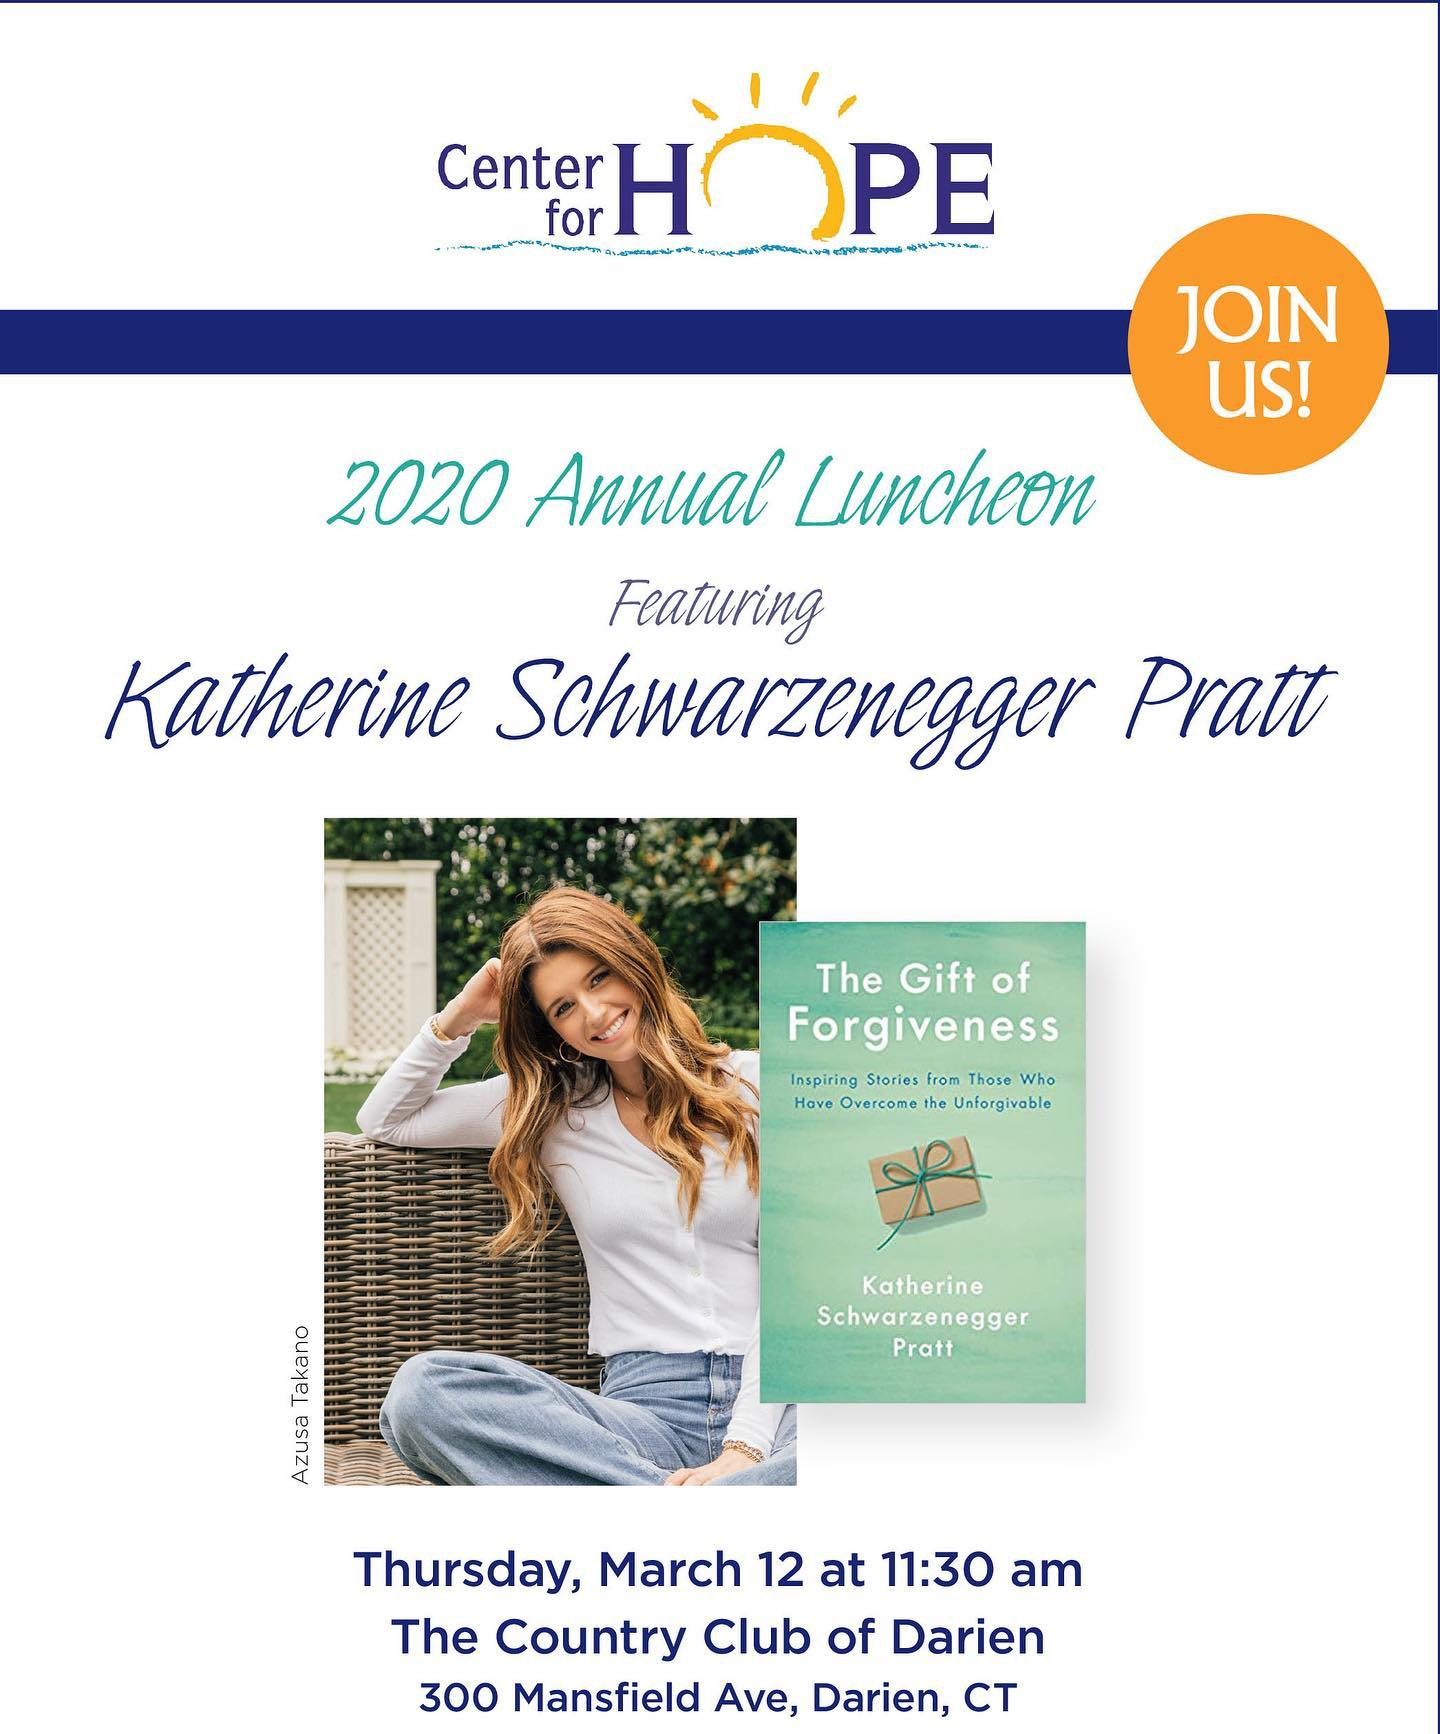 Center for Hope 2020 Annual Luncheon